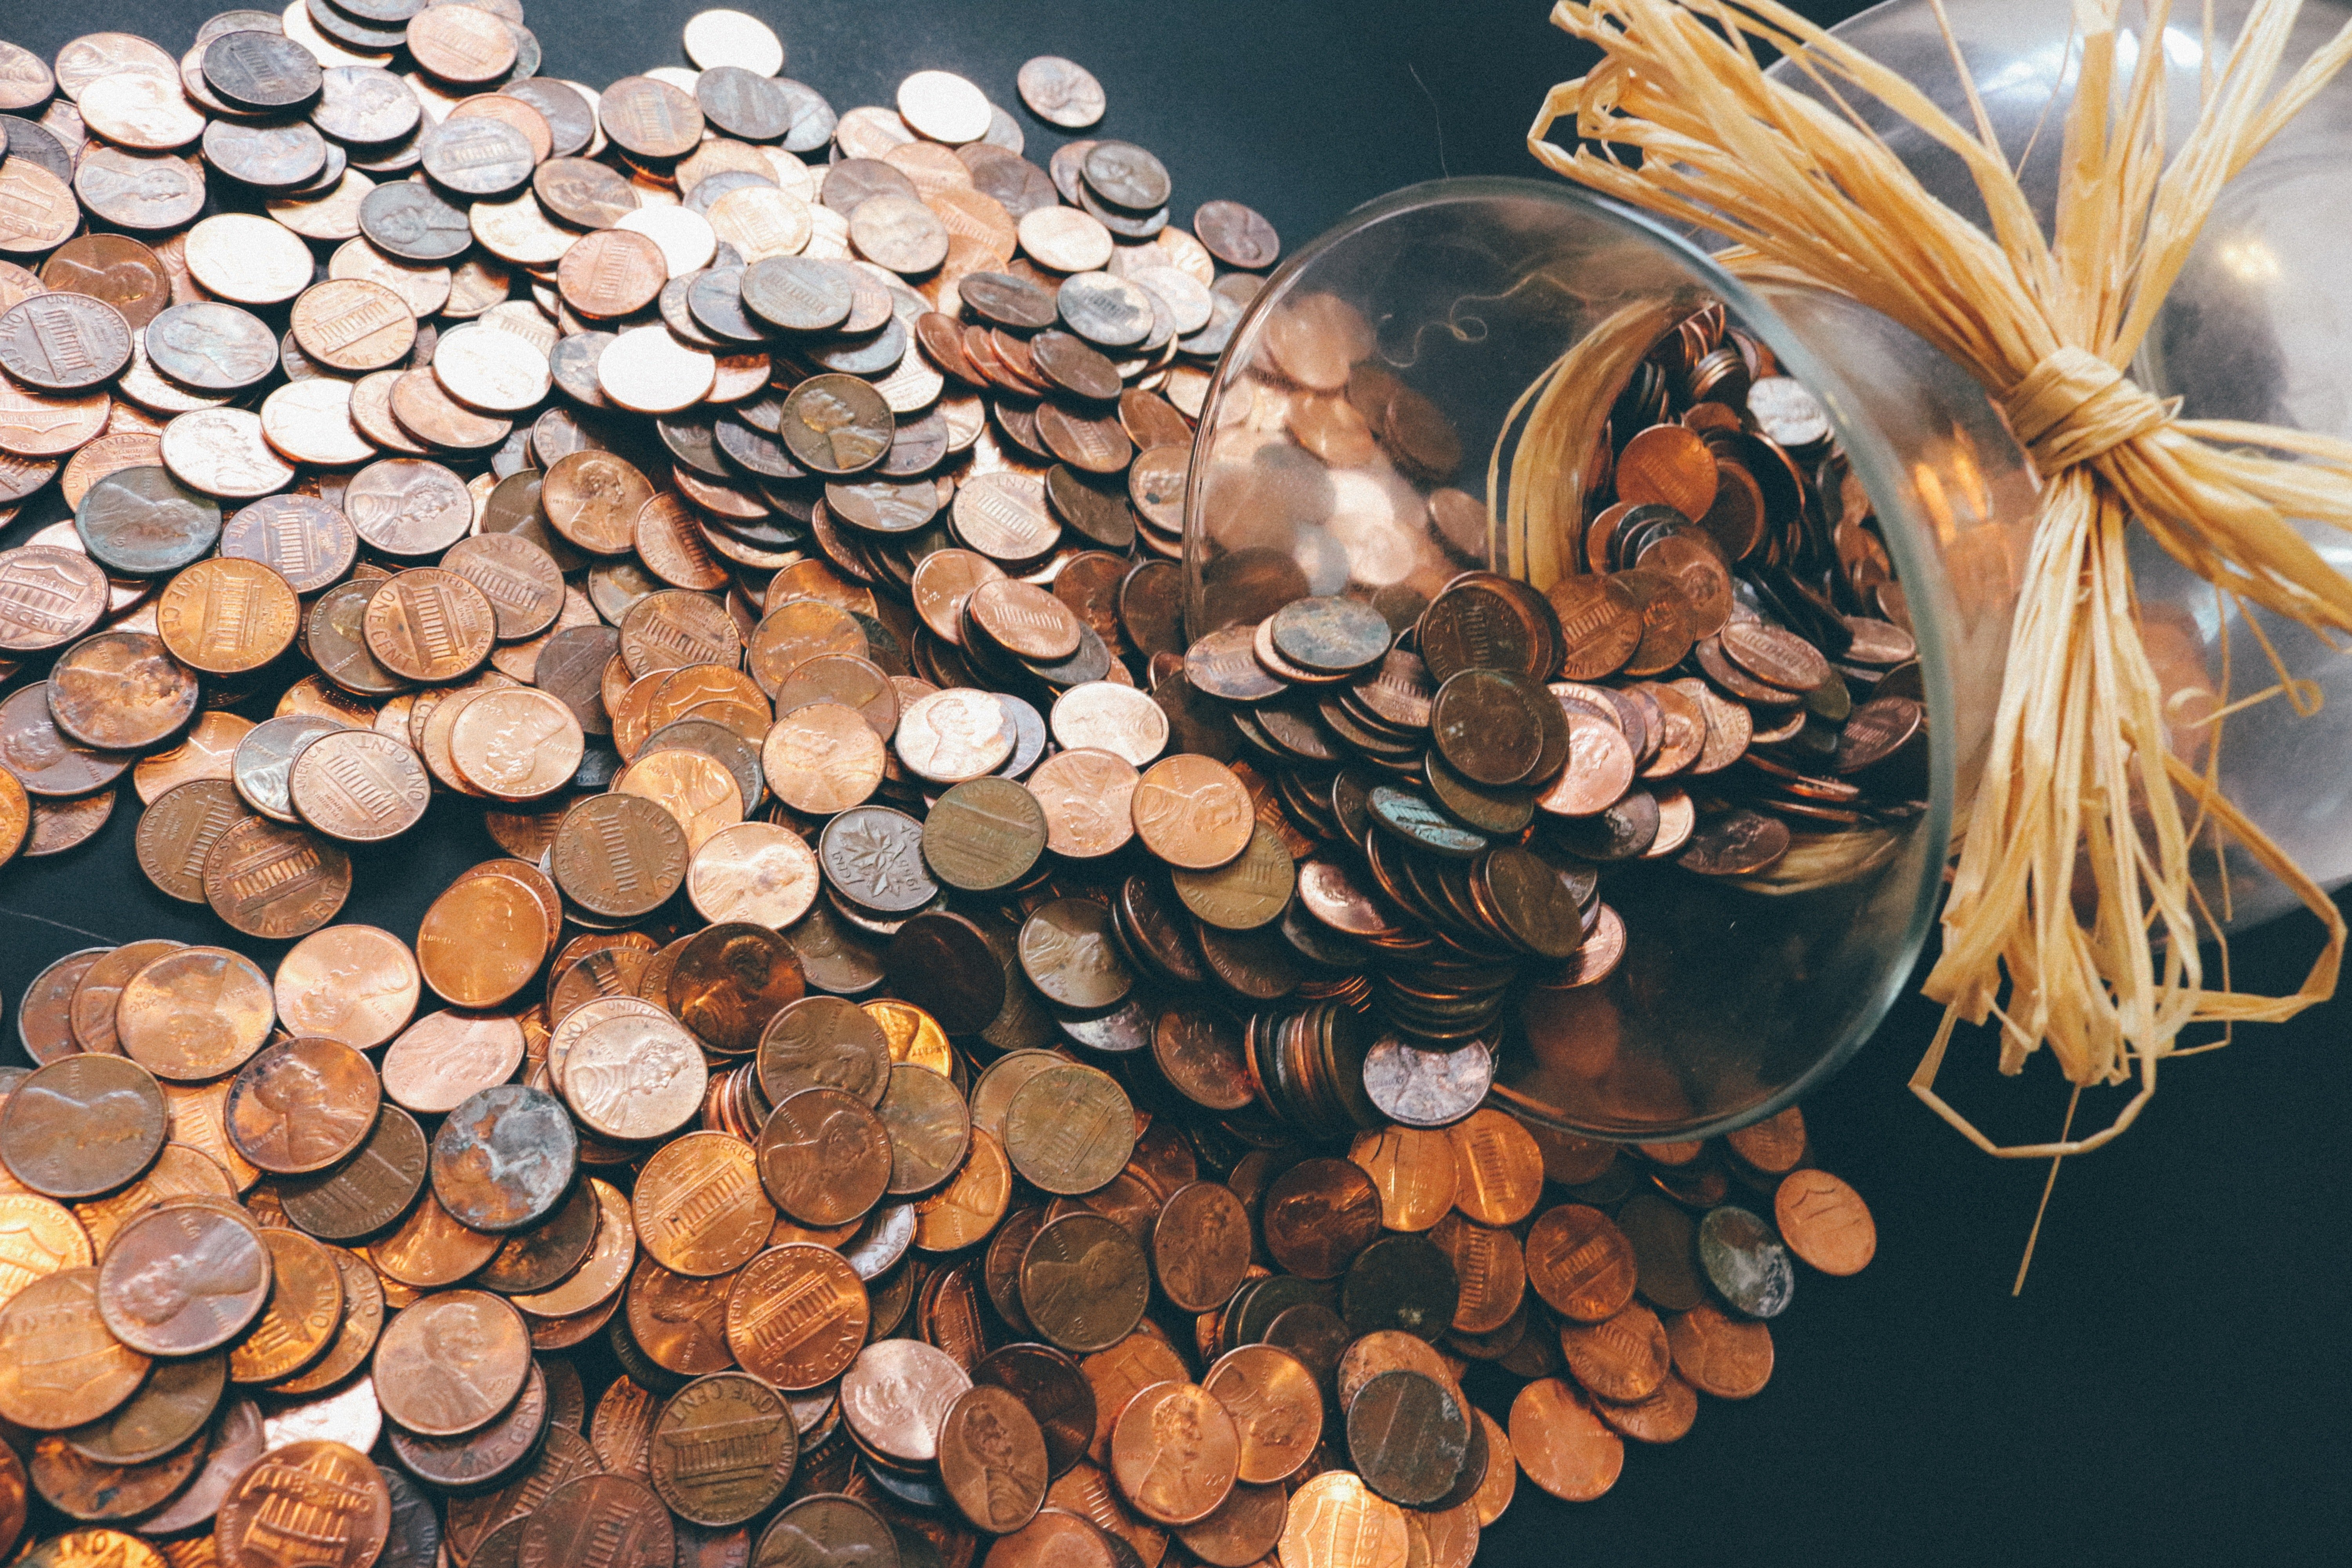 A jar of coins lies on a table   Photo: Pexels/Pixabay